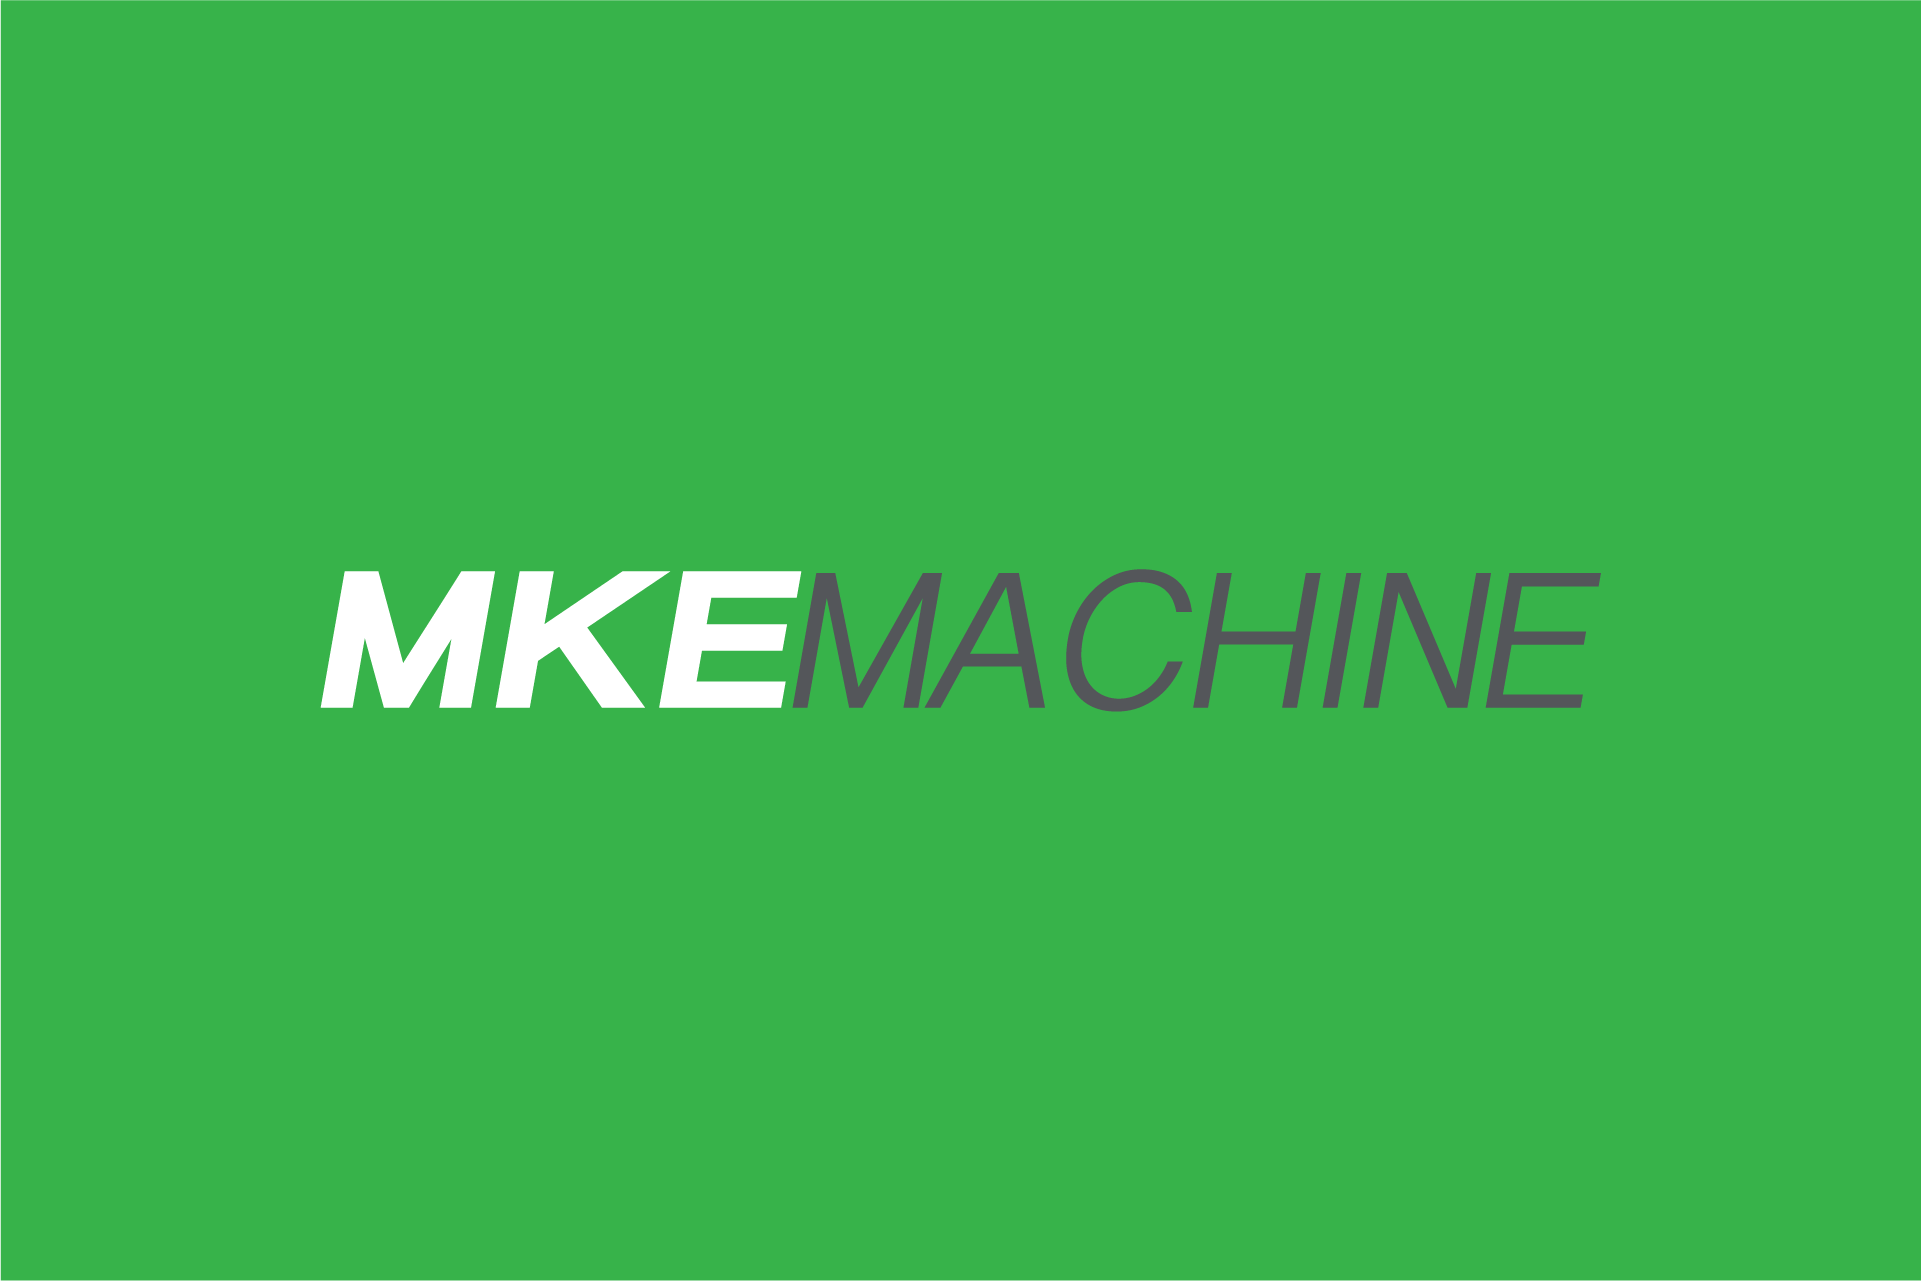 MKE Machine Logo Design Color Theory 5